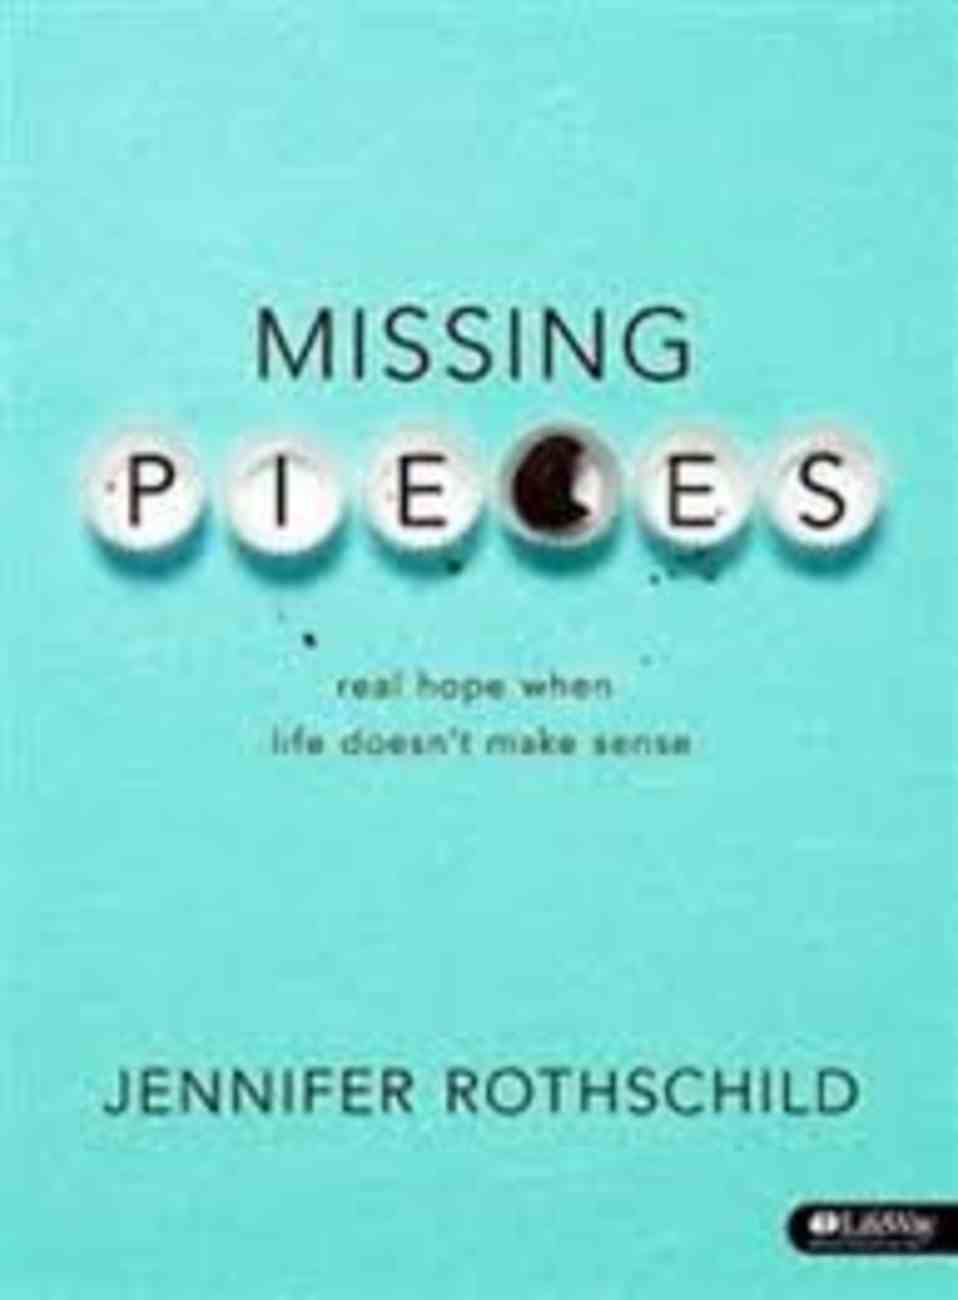 Real Hope When Life Doesn't Make Sense (Missing Pieces Series) DVD